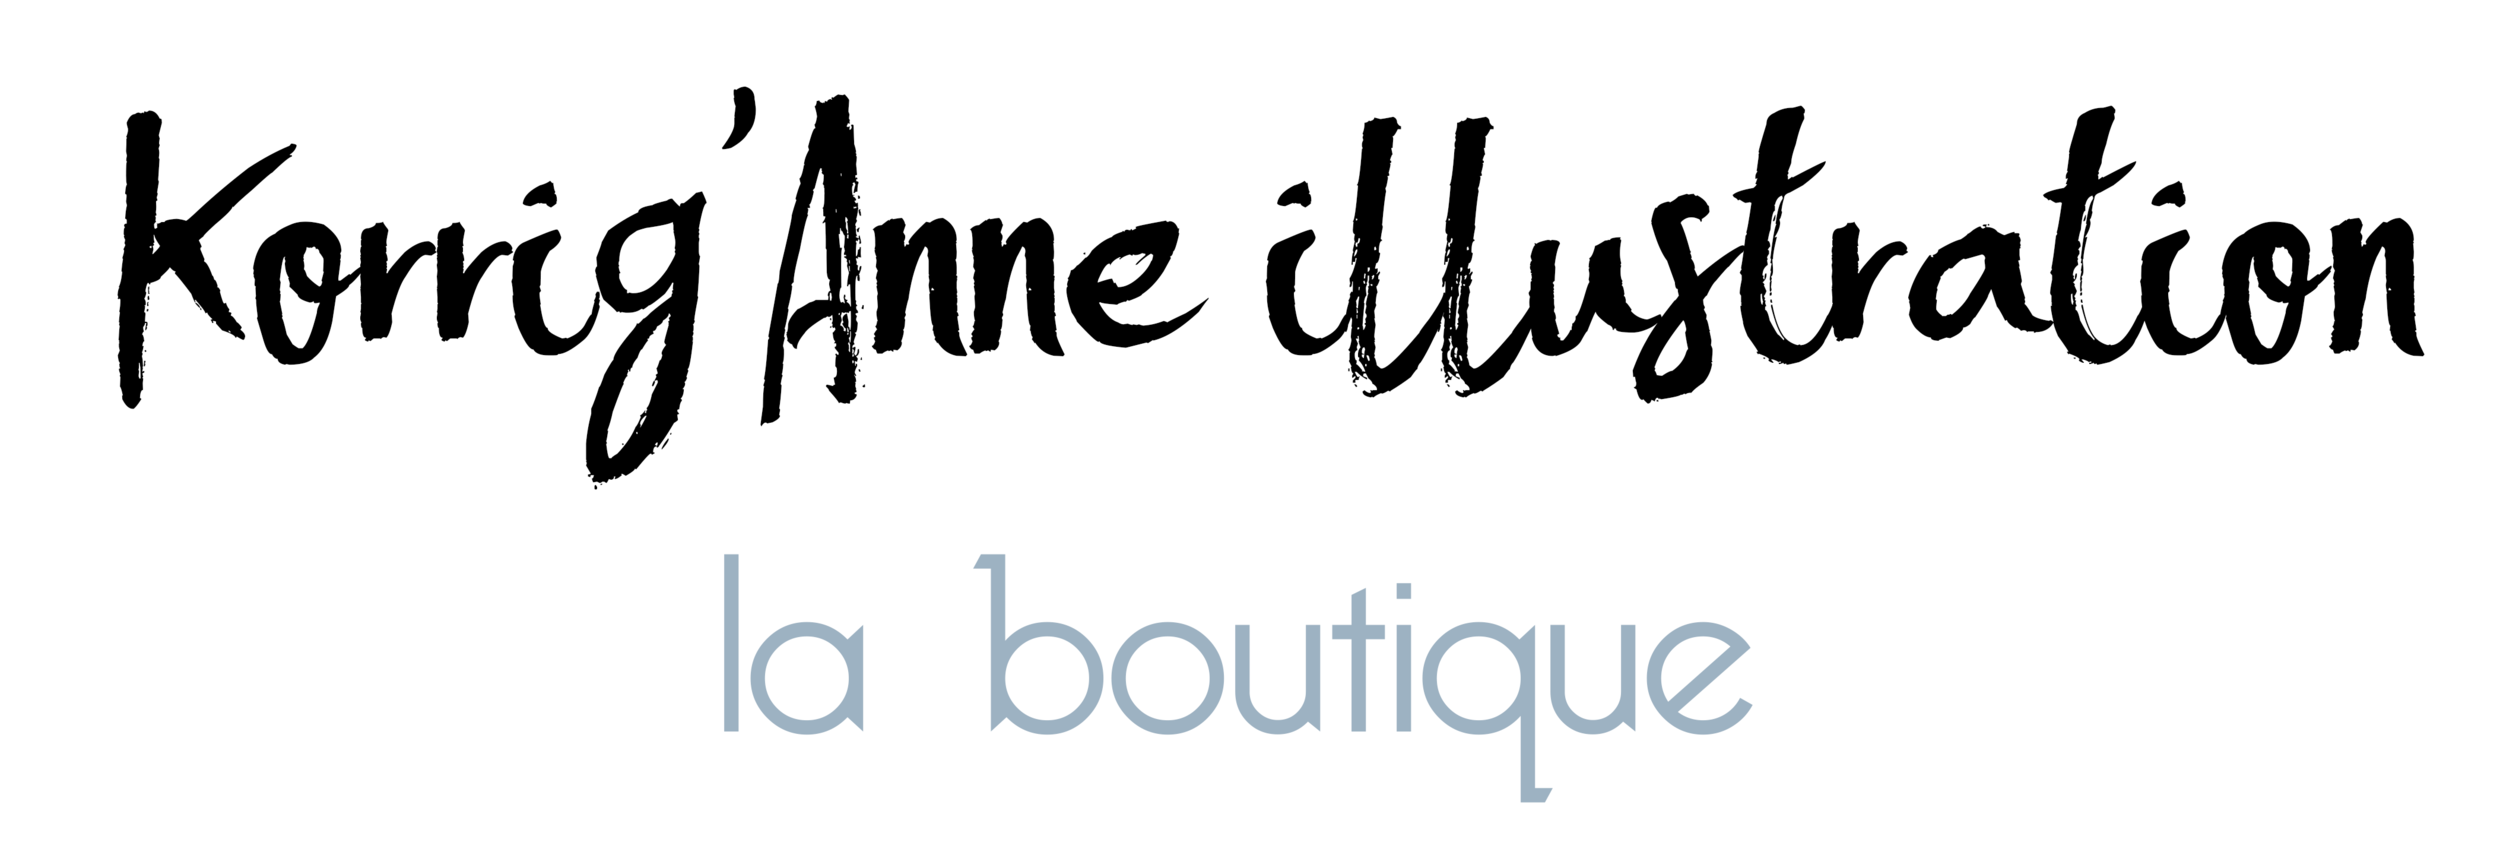 La boutique Korrig'Anne